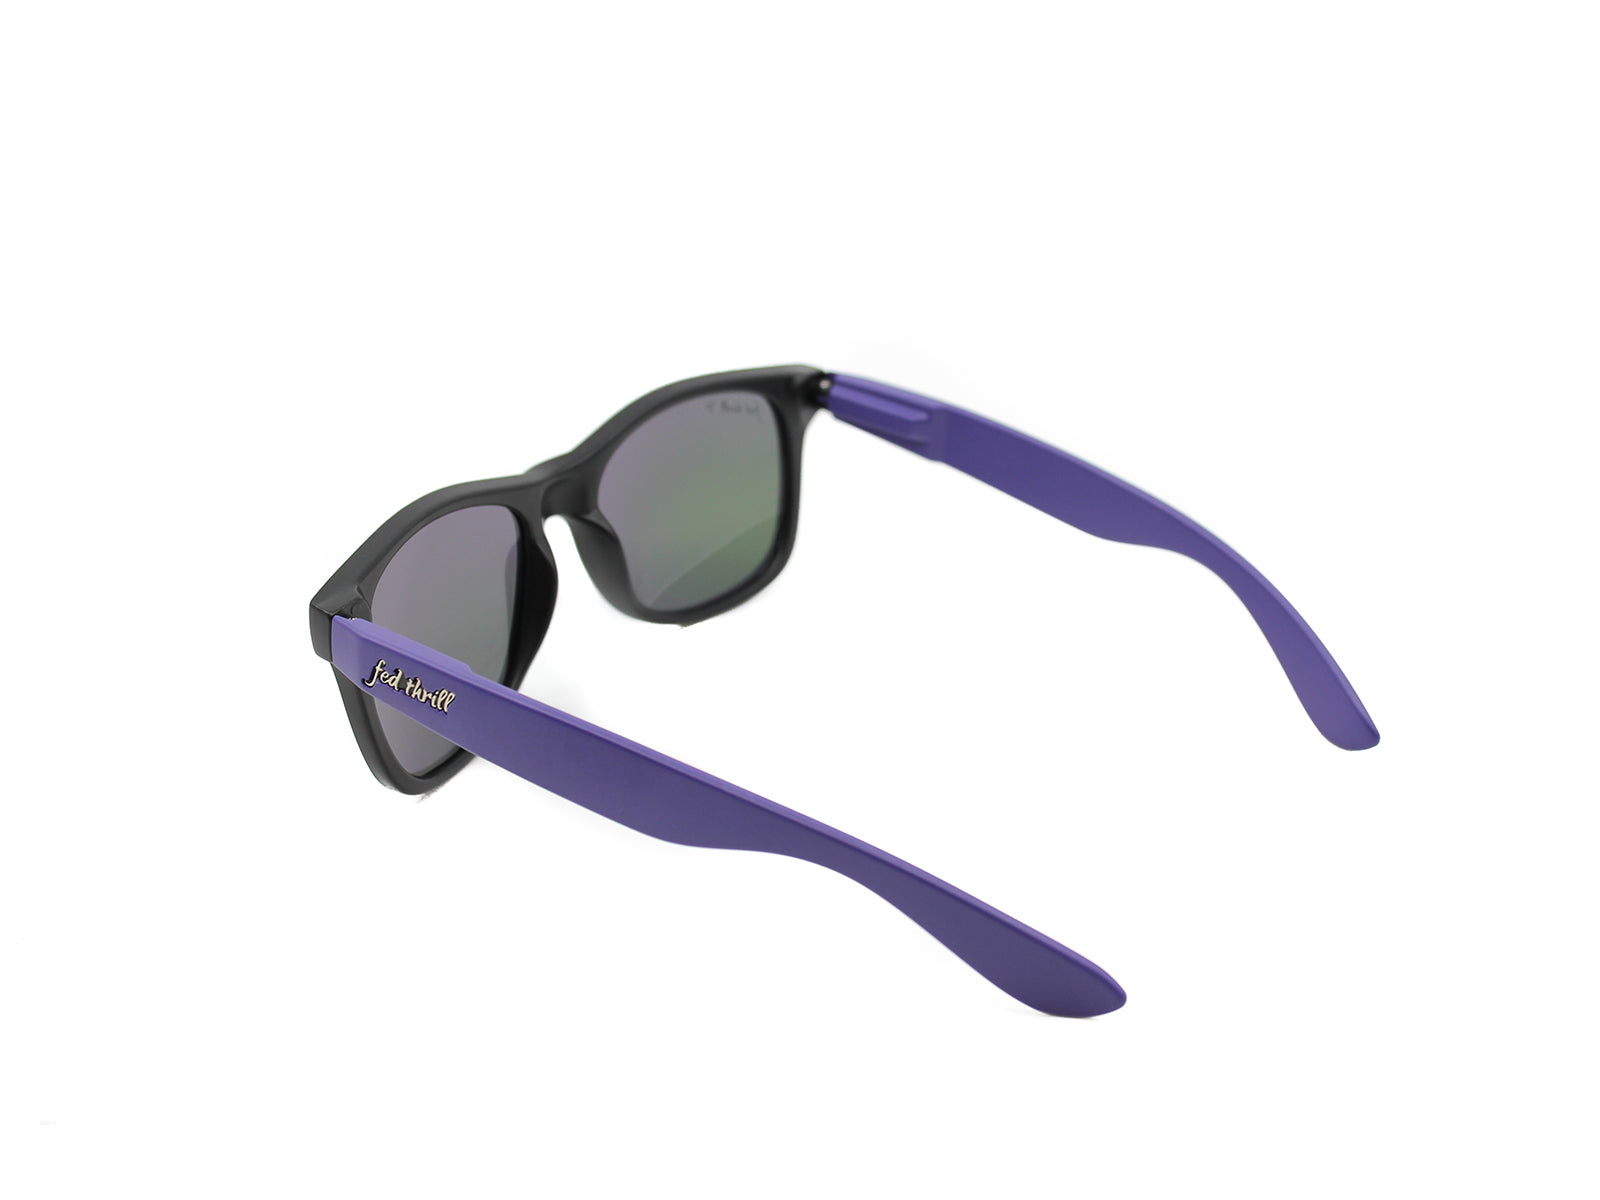 Fultons - Orchids: Matte Black / Purple / Mirrored Purple Polarized